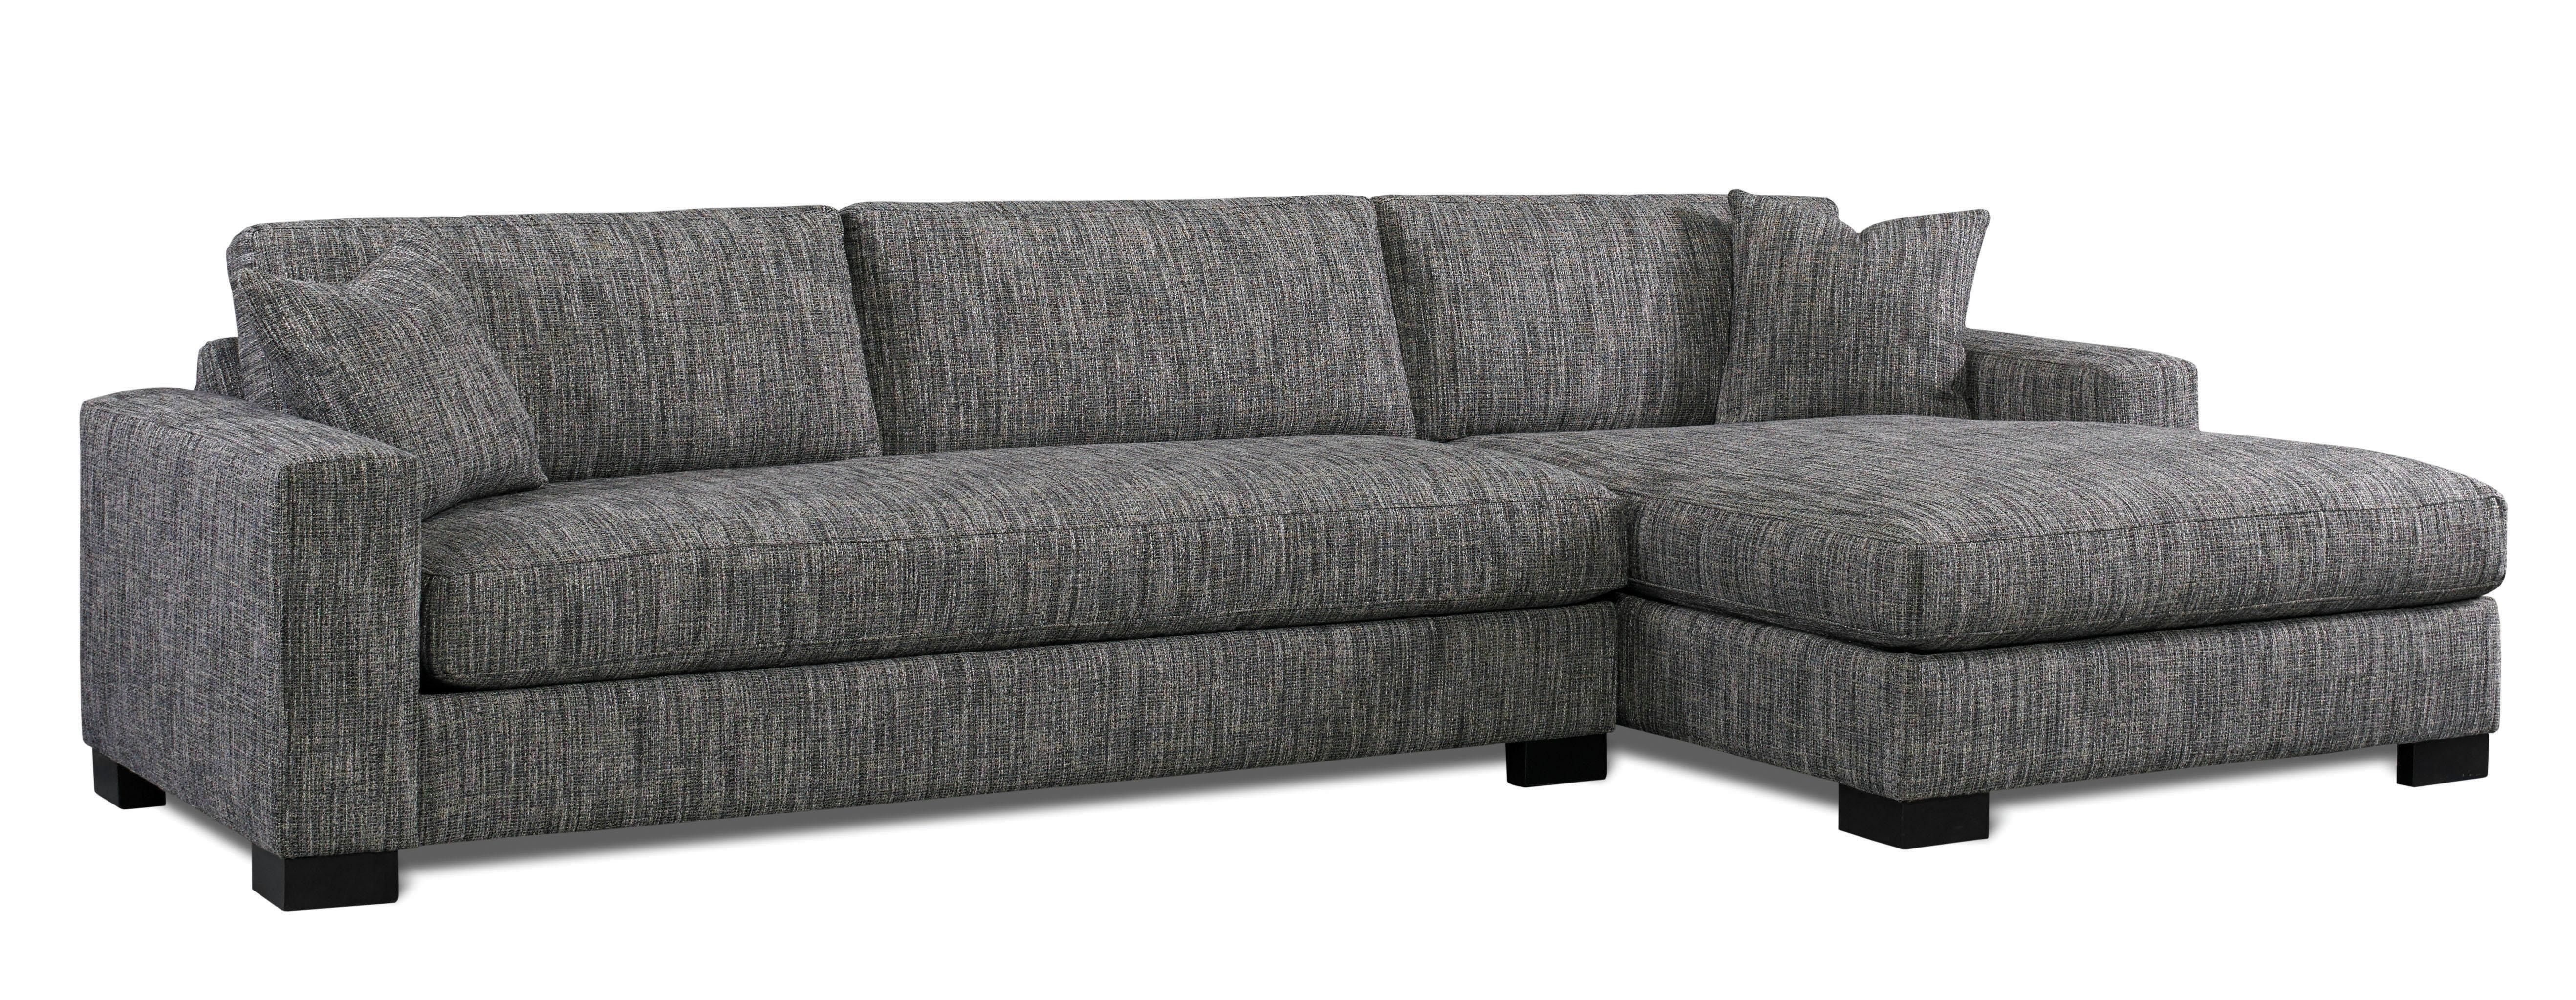 Keaton. Connor Sectional Sc 1 St Good\u0027s Home Furnishings Sc 1 St  Sectionals Sofas U0026